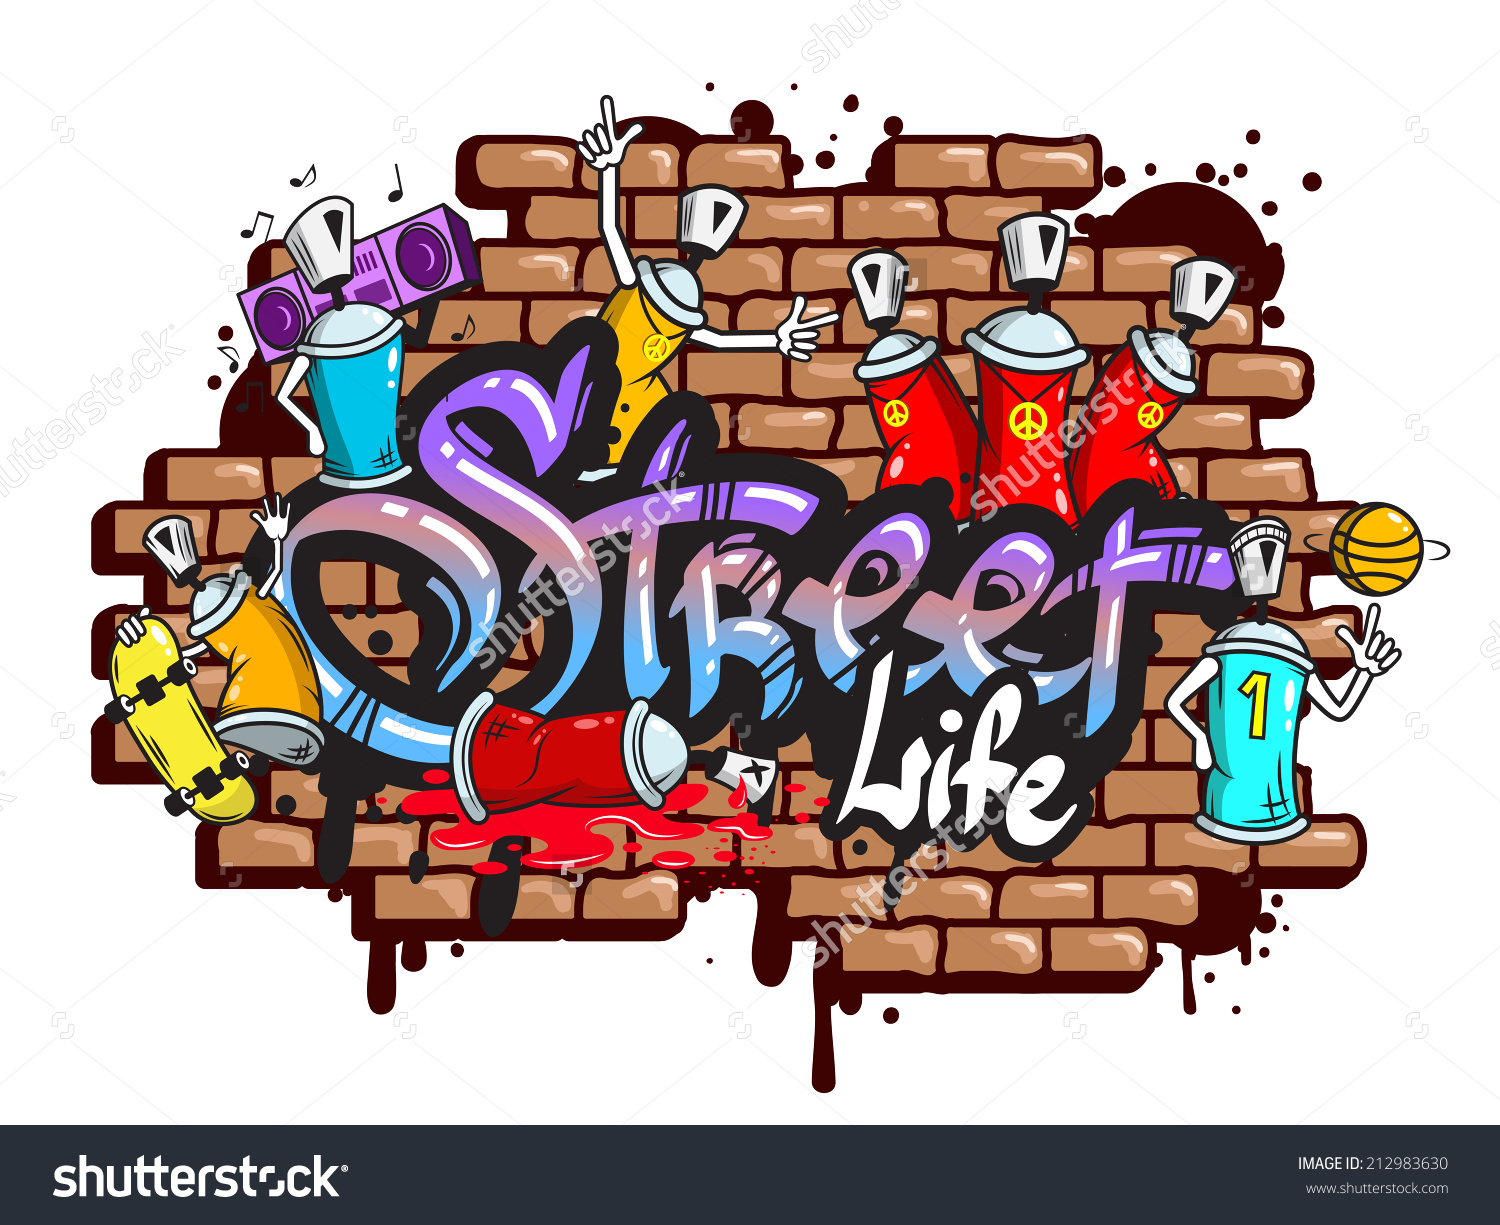 Decorative Urban World Youth Street Life Stock Vector 212983630.